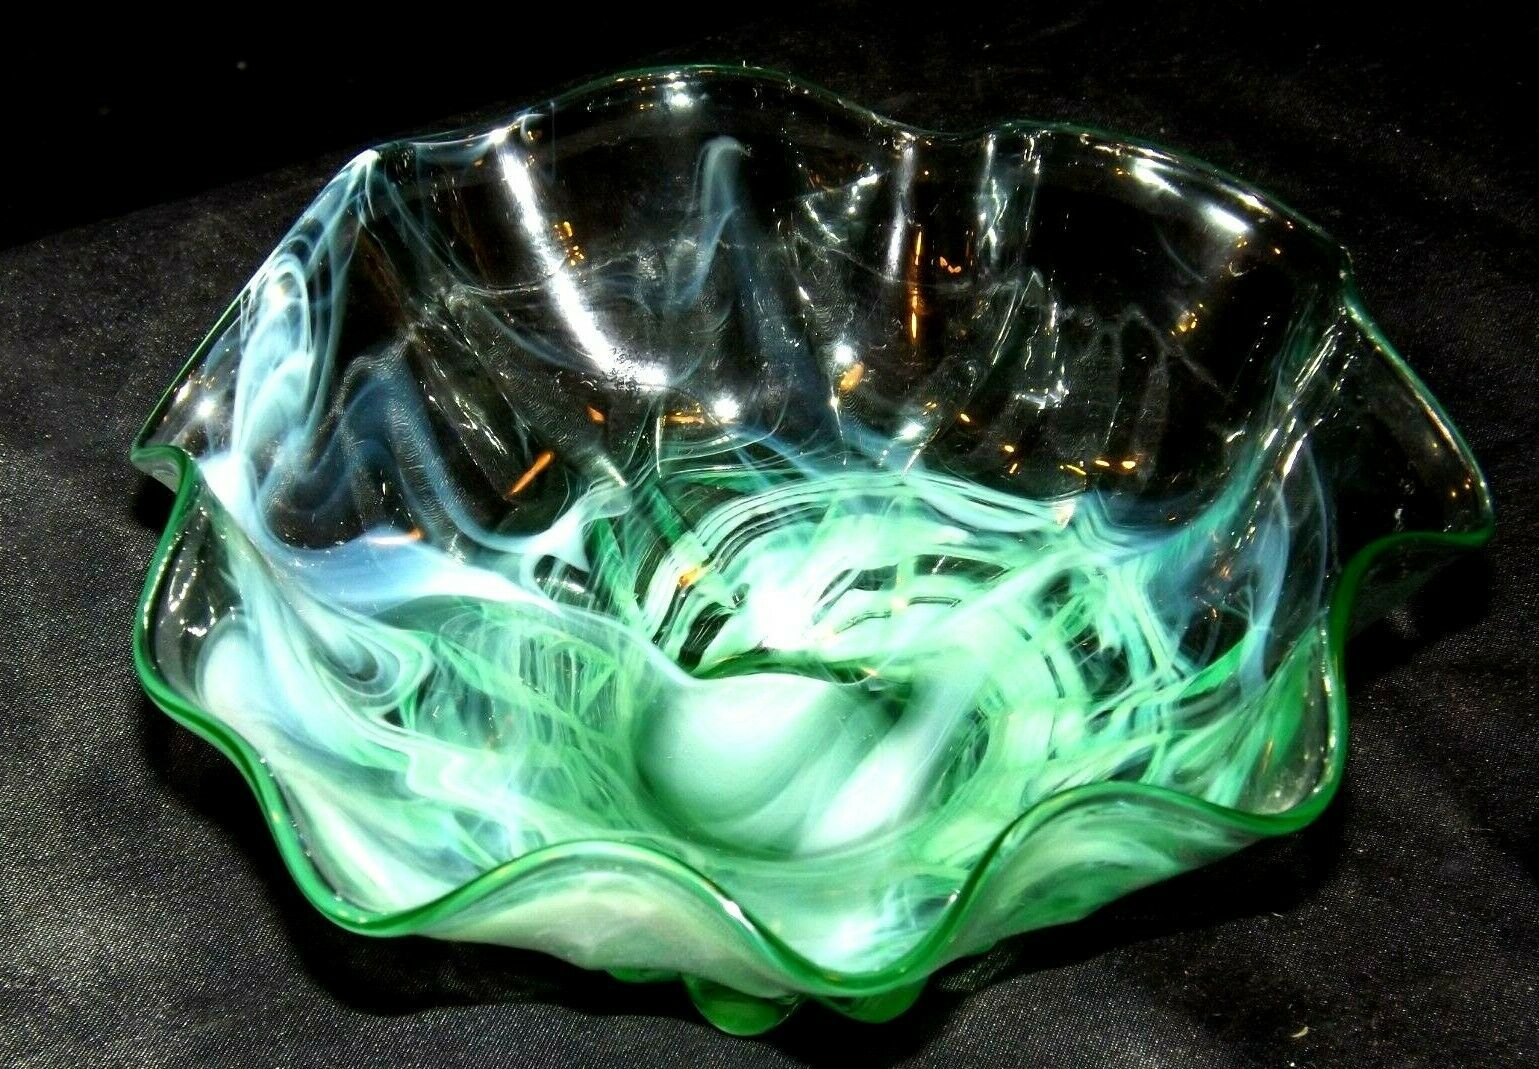 Opaque Green Footed Glass Candy Dish with colorful Swirls AA19-CD0032 Vintage